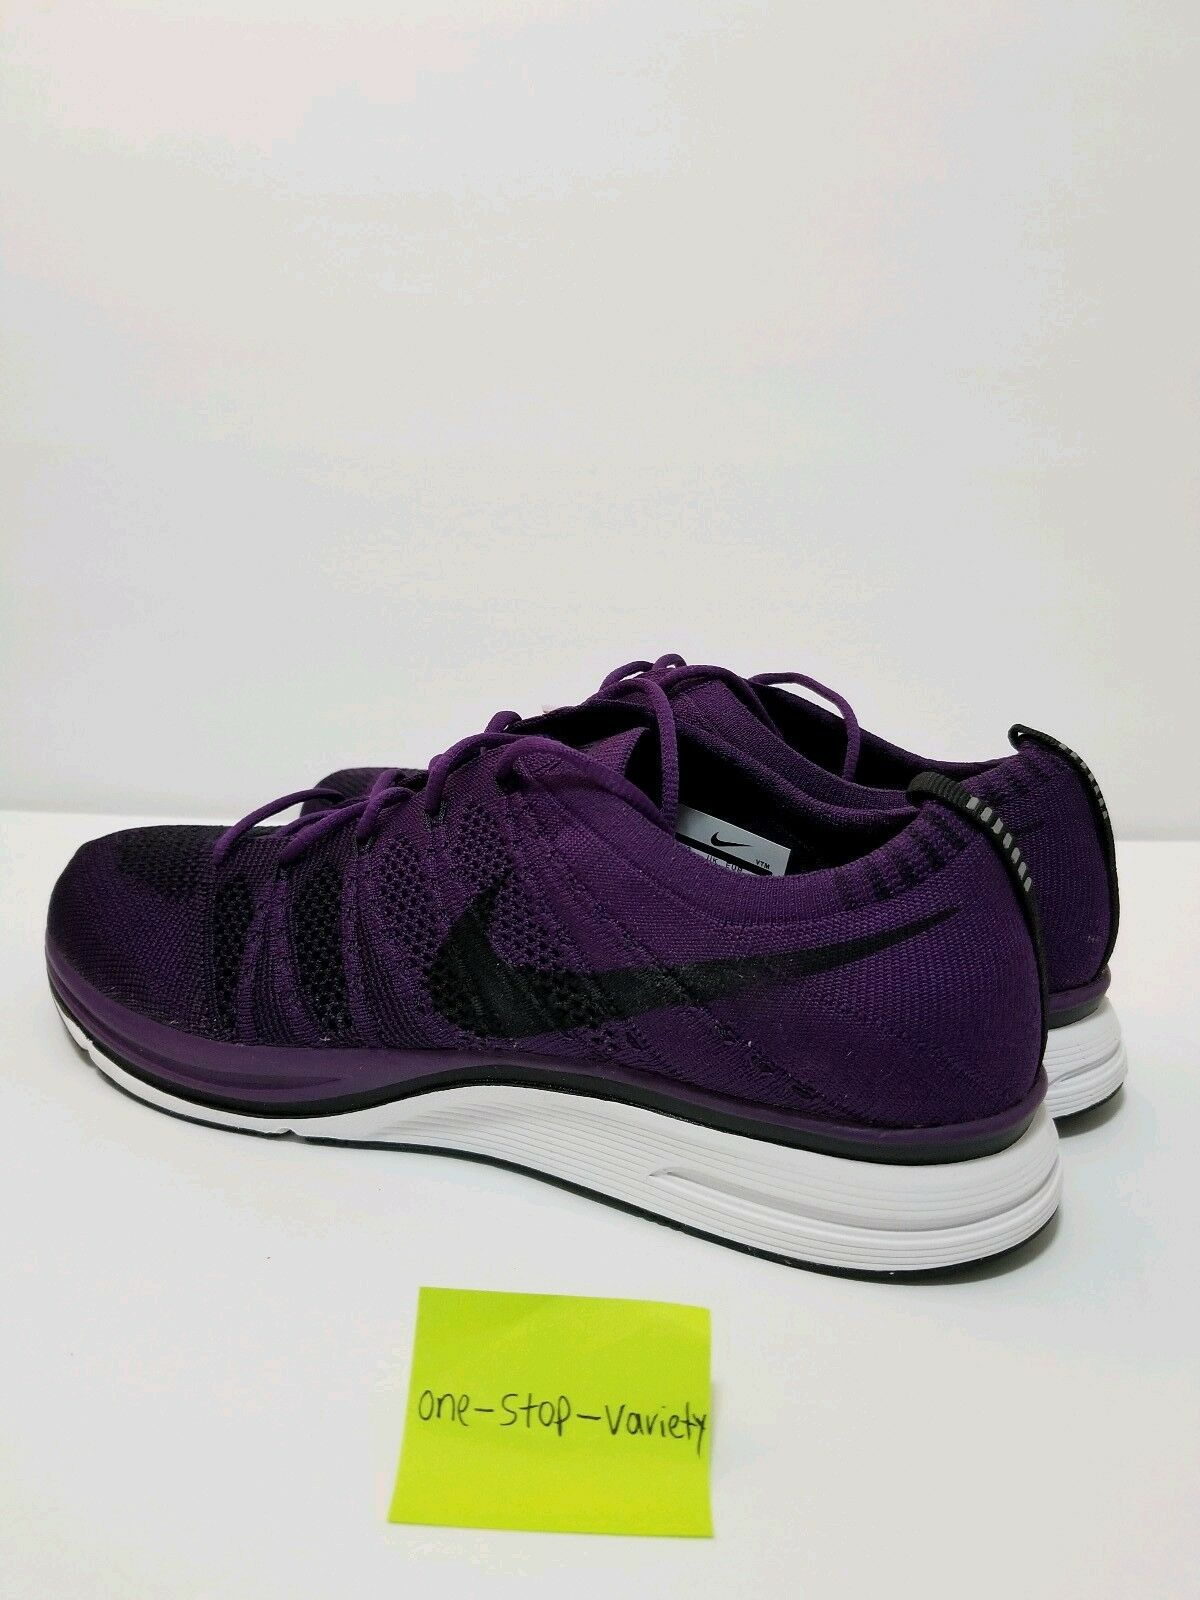 NIKE FLYKNIT TRAINER TRAINER TRAINER Night Purple Men's Shoes Size 9 BLACK WHITE AH8396-500 2a44f6